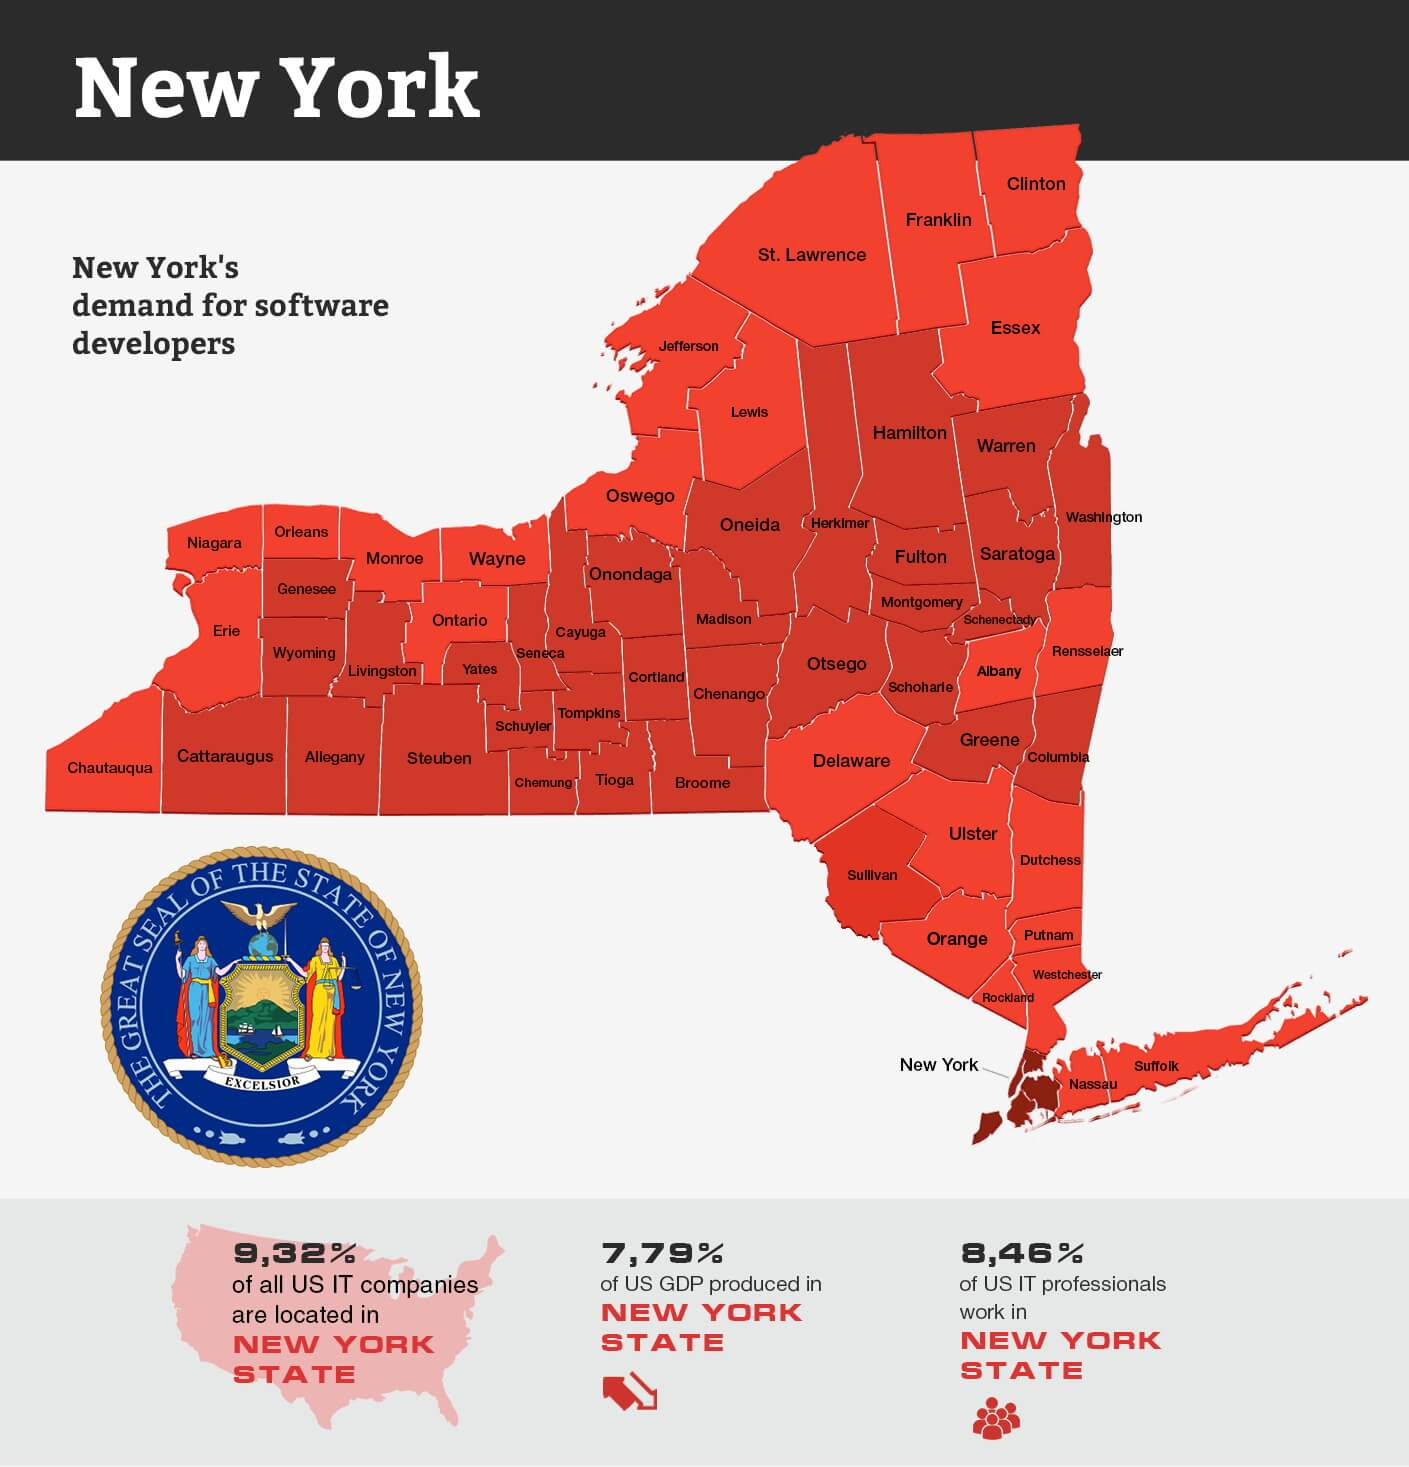 Software developers in New York infographic